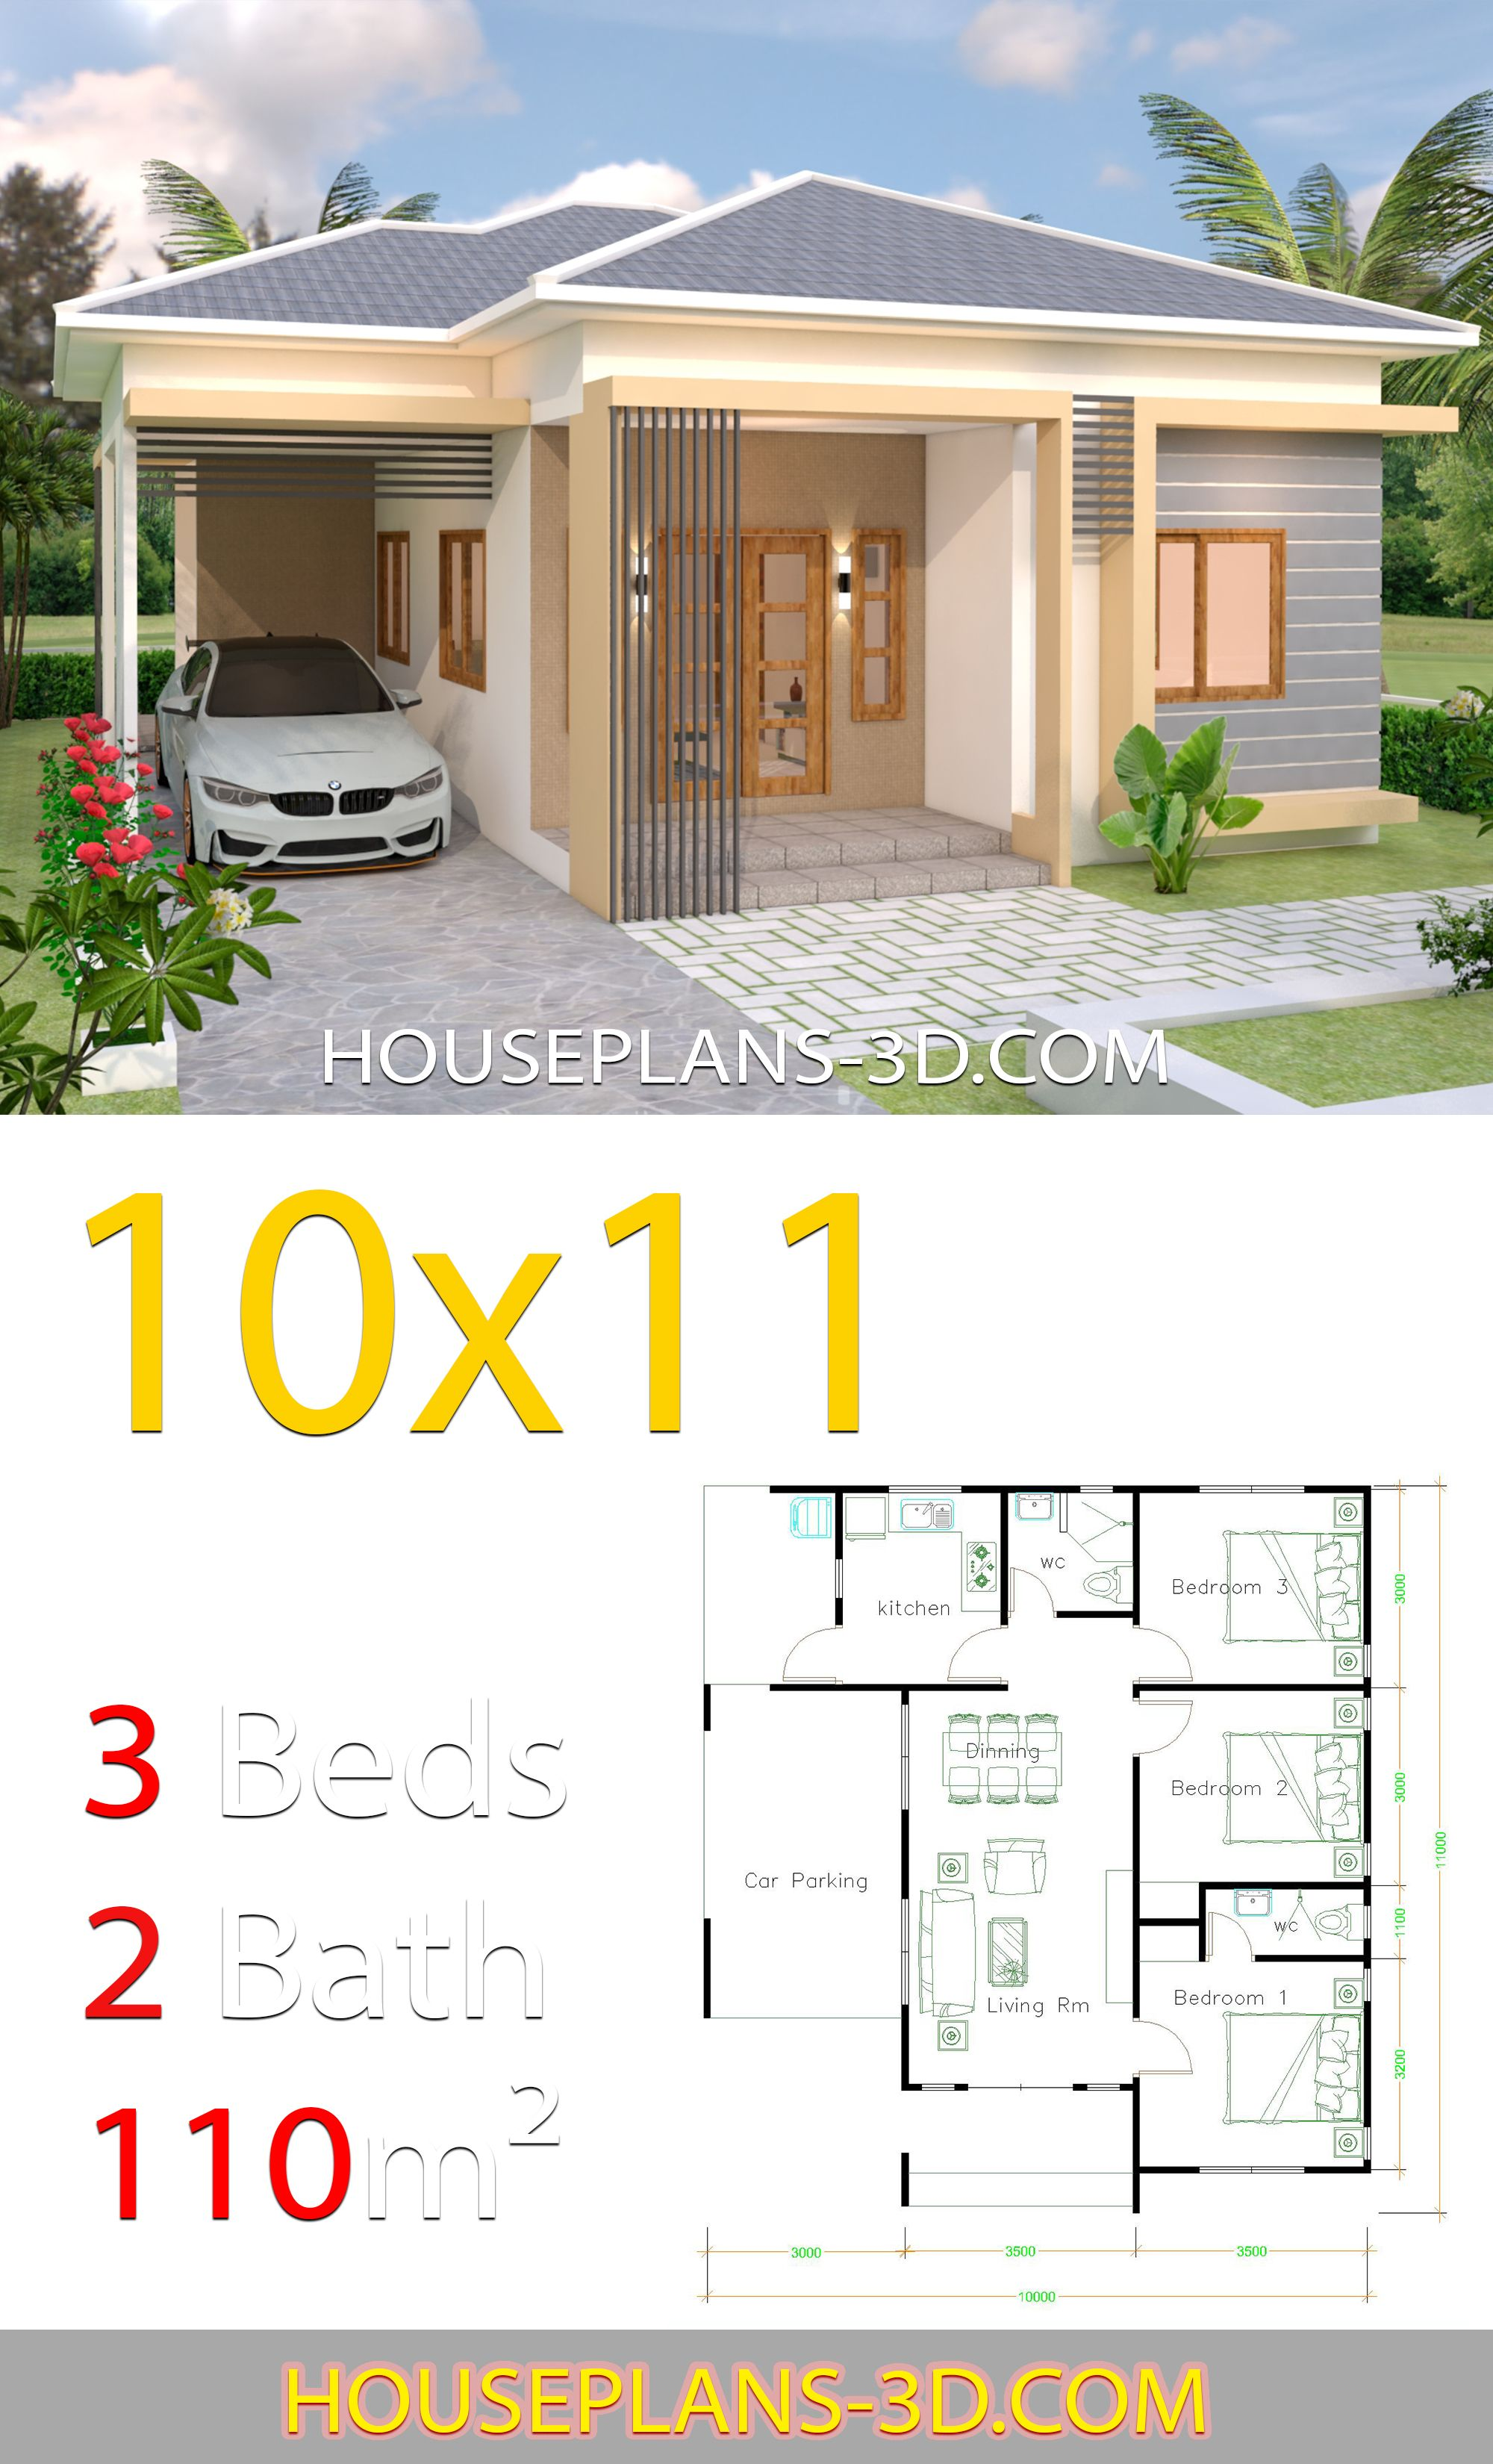 House Design 10x11 With 3 Bedrooms Hip Tiles House Plans 3d In 2020 Diy House Plans Affordable House Plans House Plans